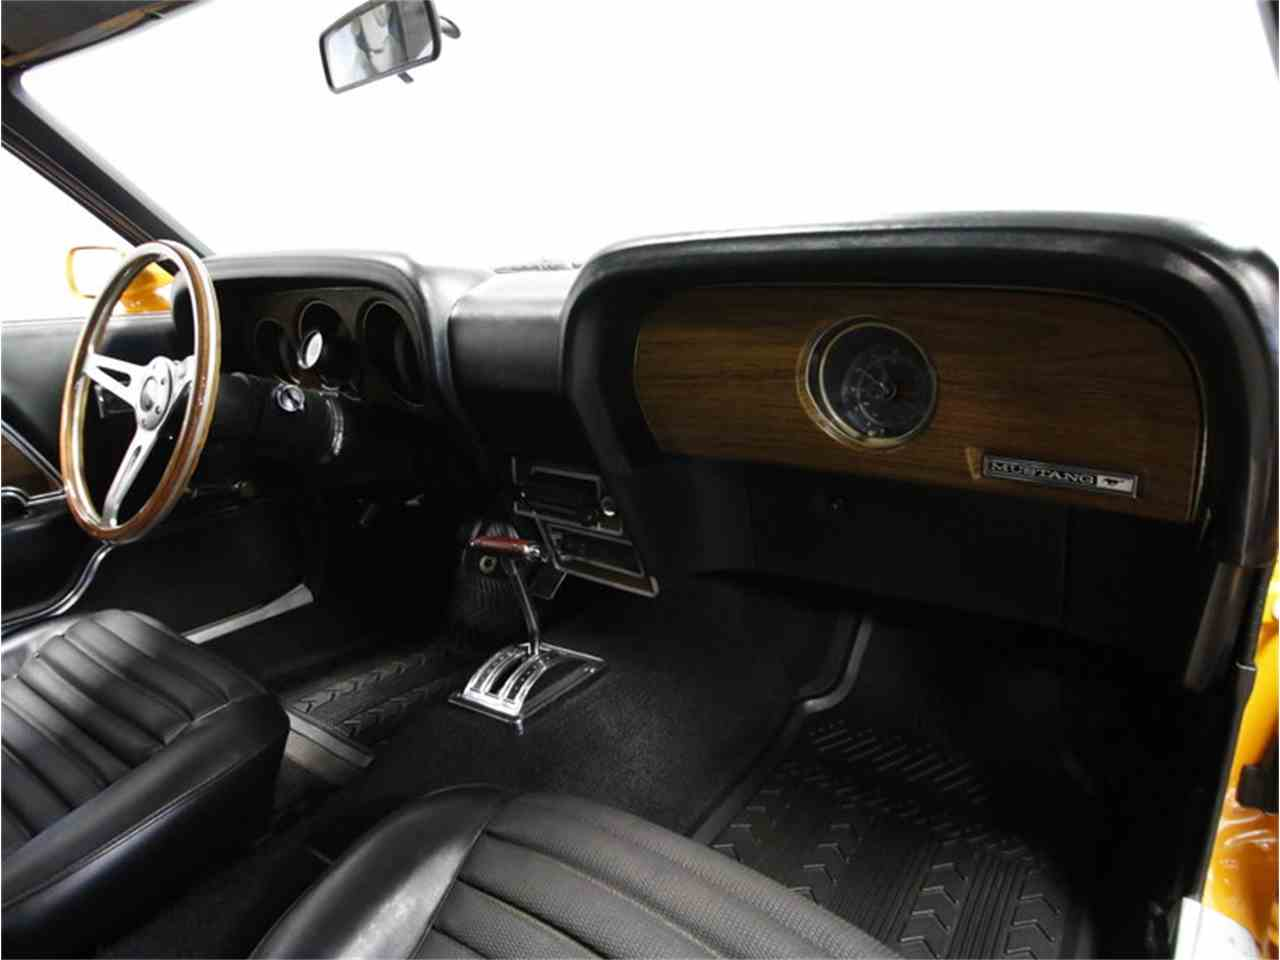 Large Picture of '70 Ford Mustang Boss 302 Tribute located in North Carolina Offered by Streetside Classics - Charlotte - IQT9